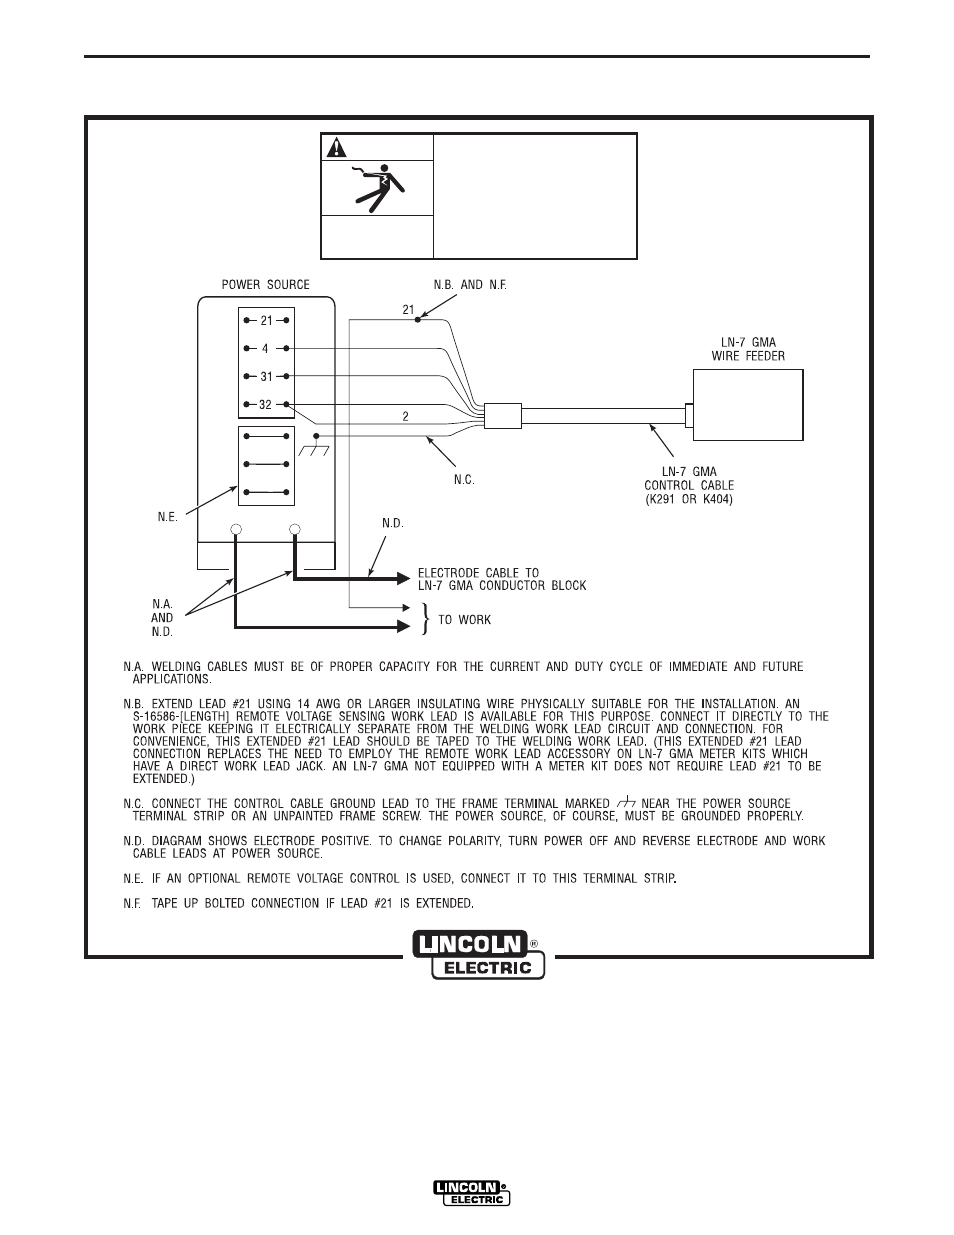 milnor wiring diagrams best wiring library 1966 Lincoln Wiring-Diagram lincoln ln7 wiring diagrams lincoln marauder wiring lincoln power mig 200 lincoln r3s 250